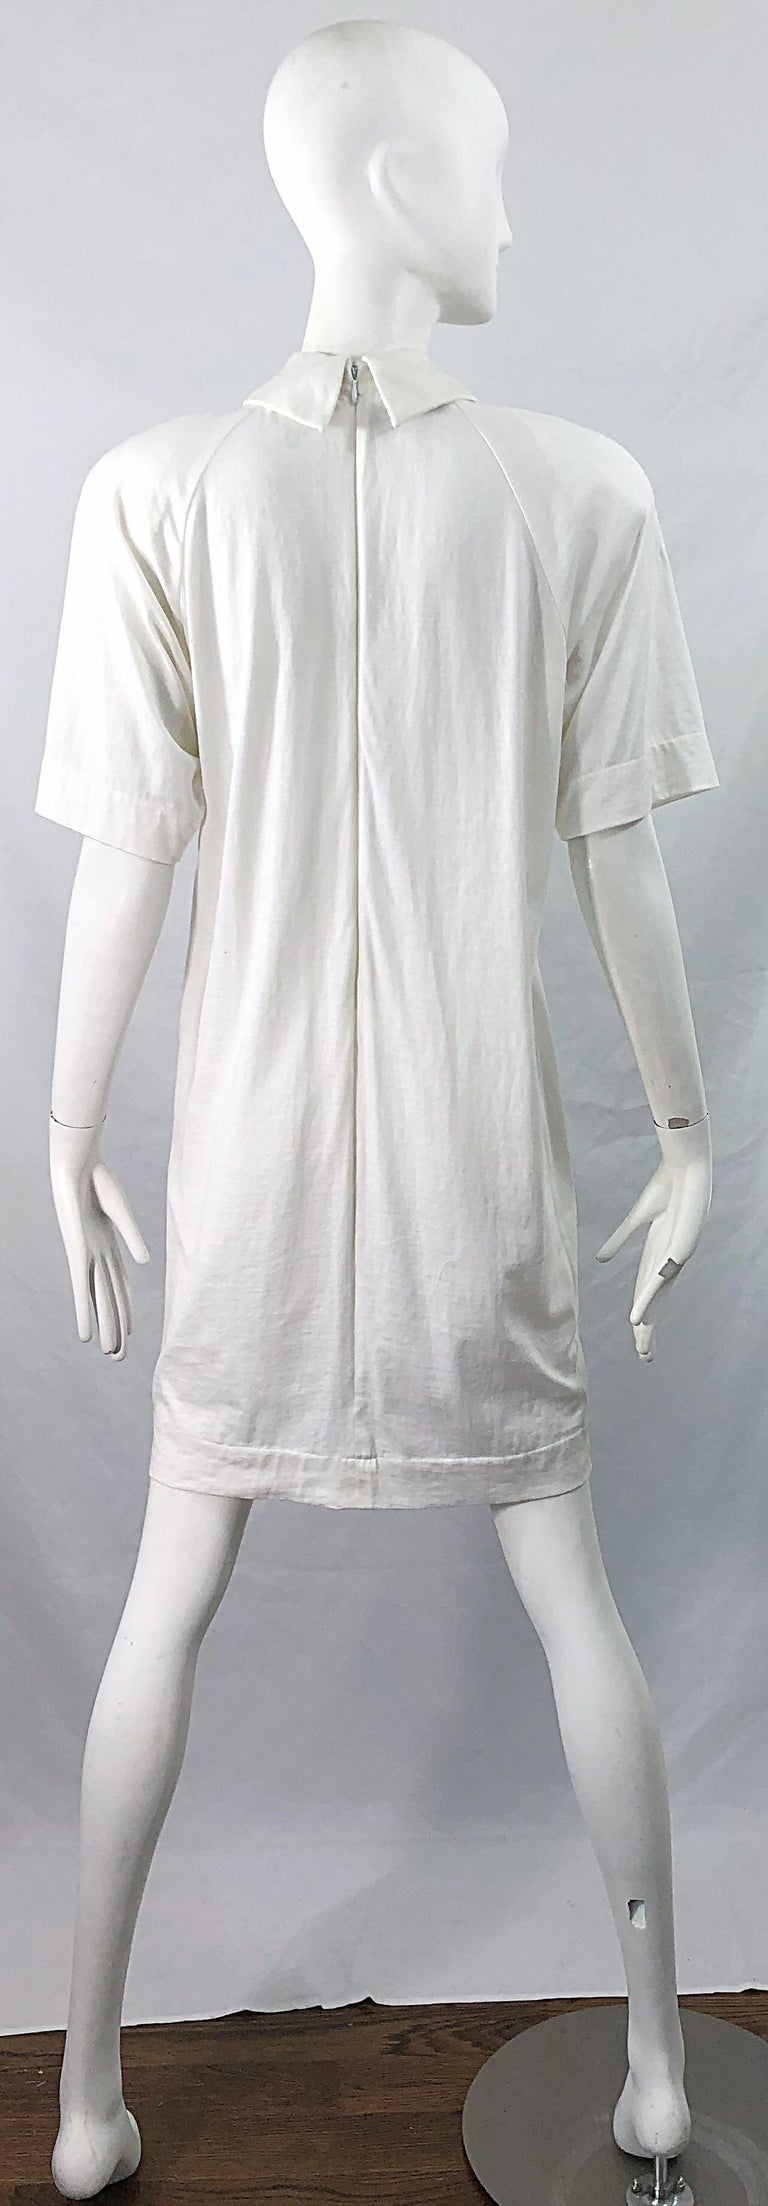 1990s James Purcell Size 6 / 8 White Cotton Vintage 90s T-Shirt Dress For Sale 10